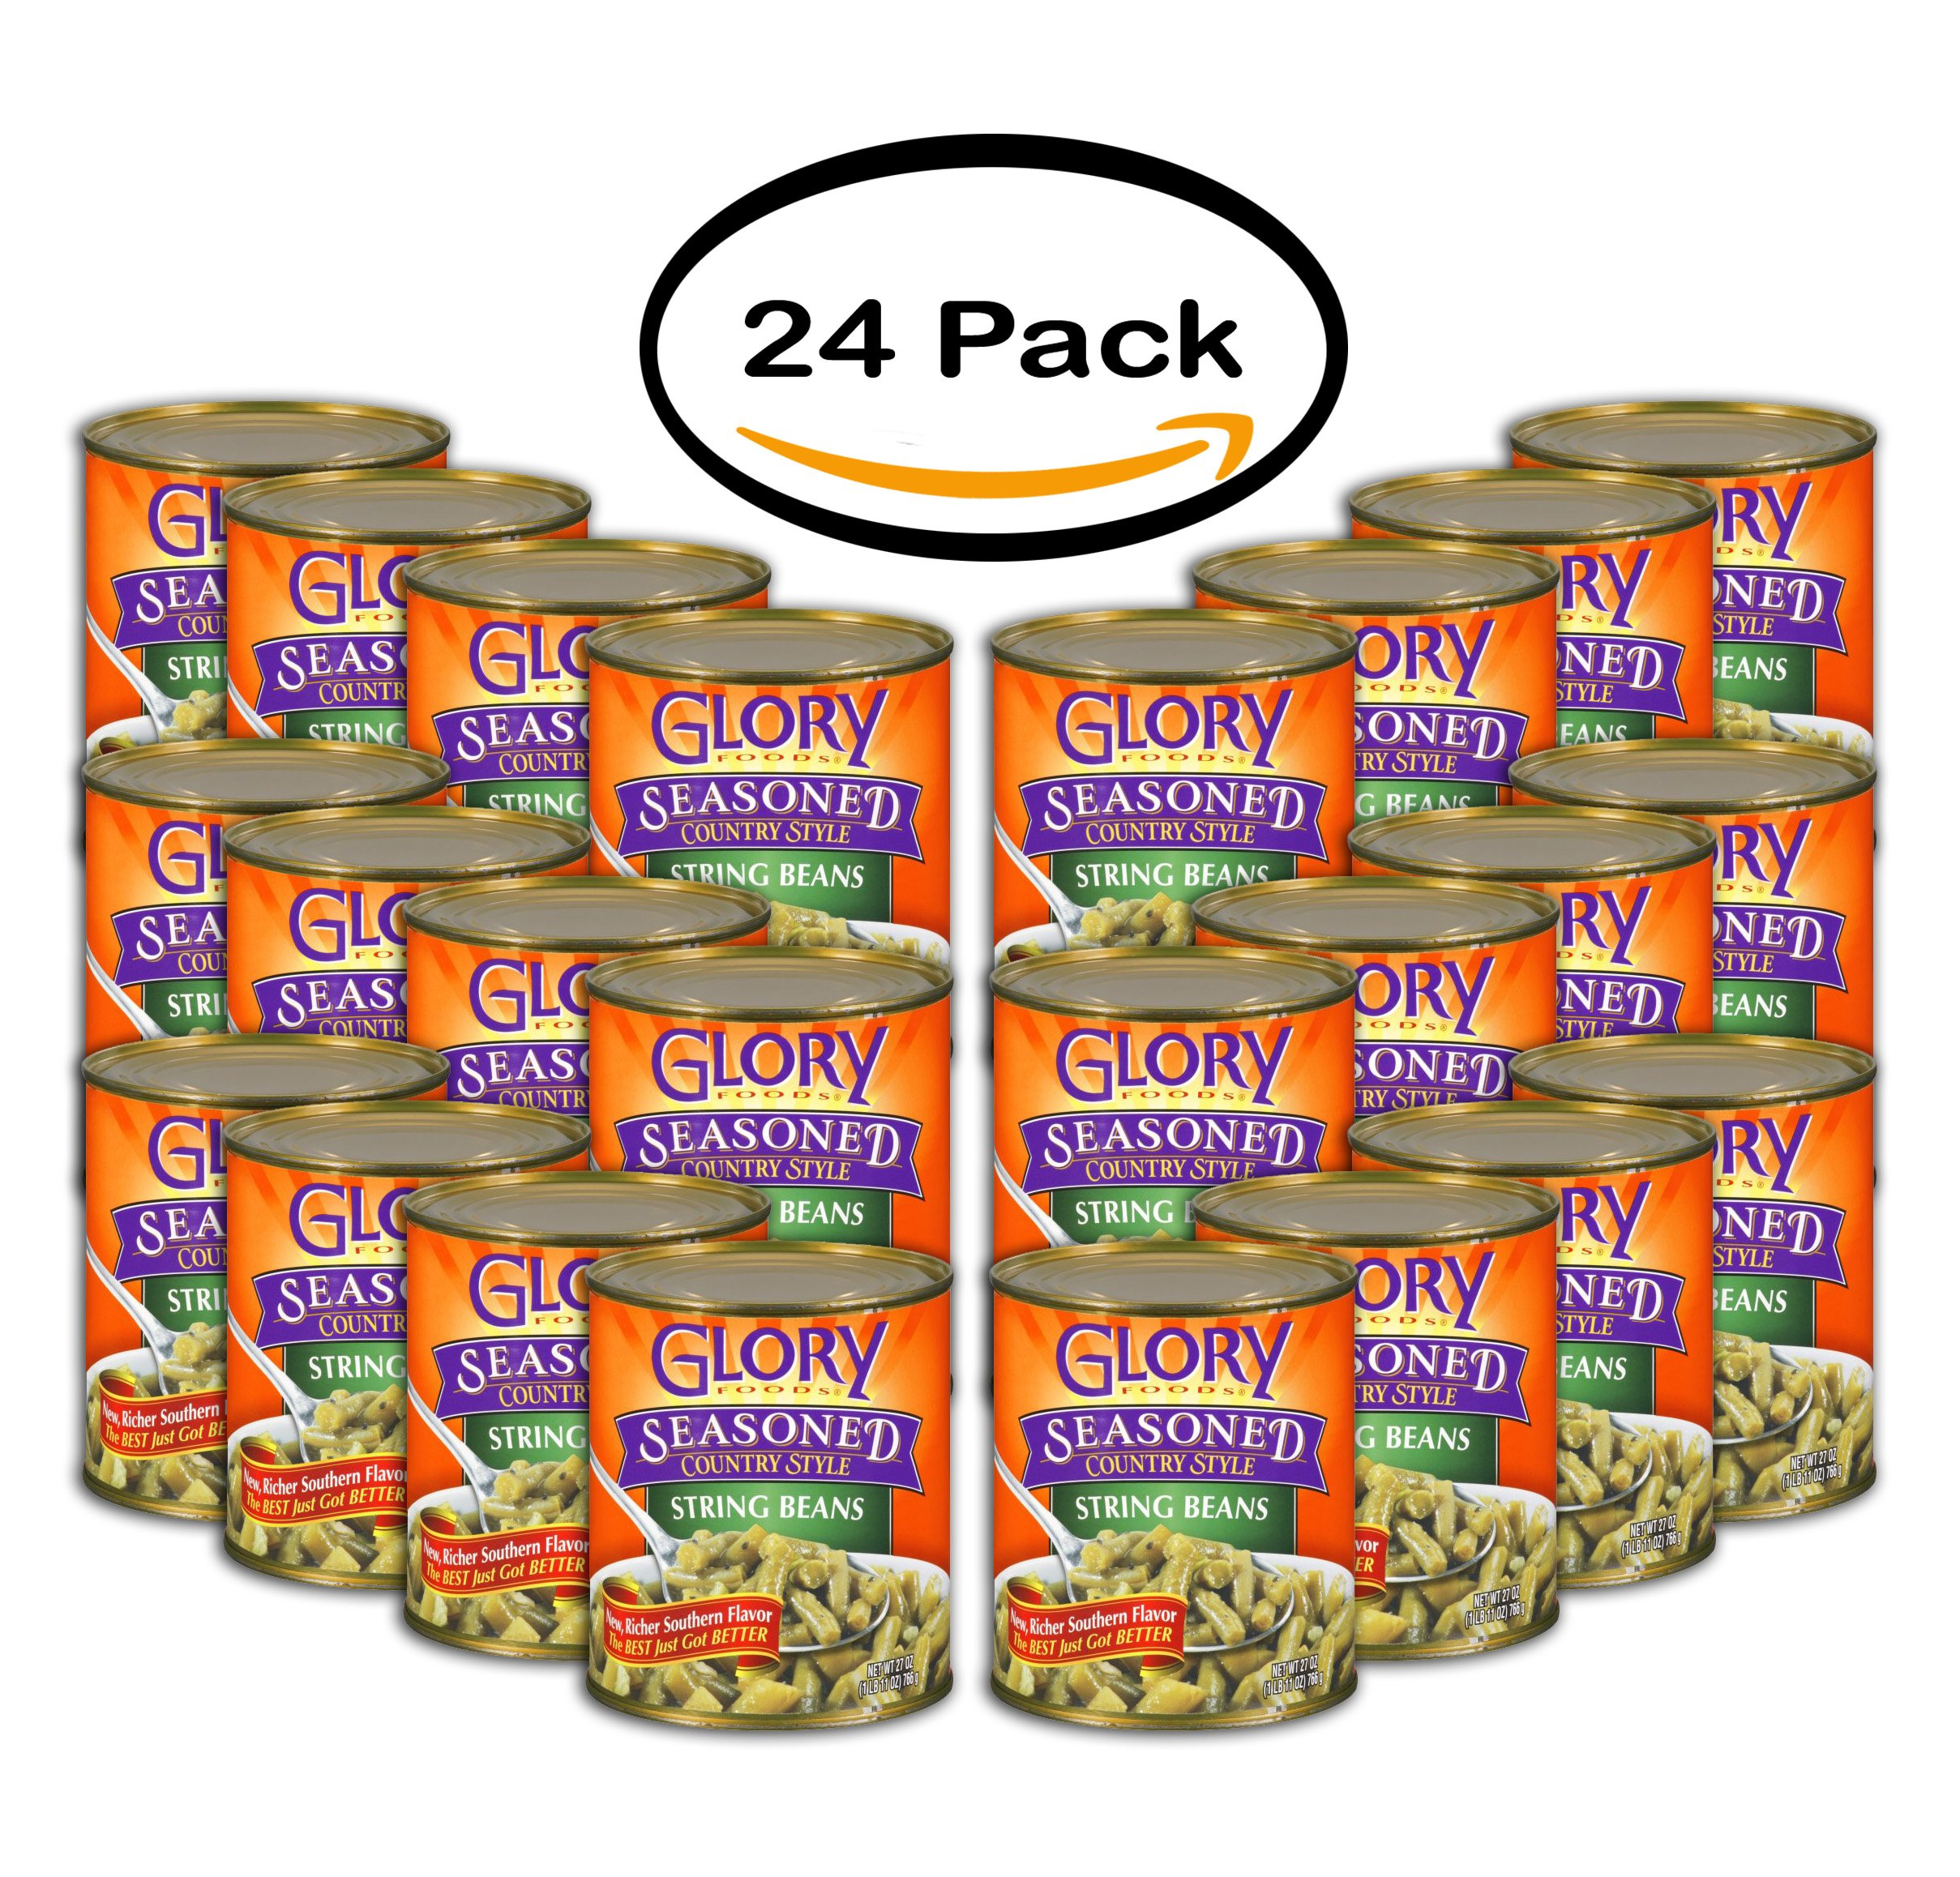 PACK OF 24 - Glory Foods Seasoned Southerny Style Green Beans, 27.0 OZ by GLORY